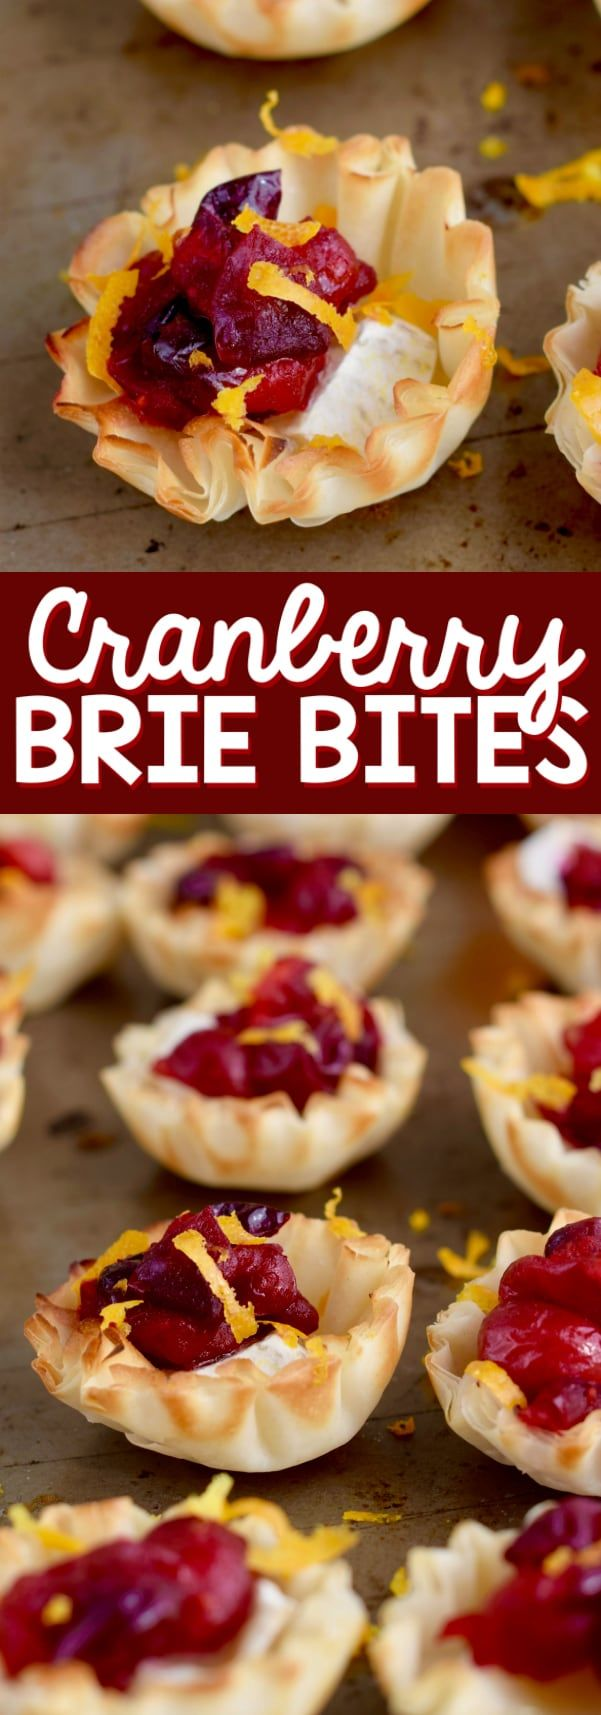 These Cranberry Brie Bites make the perfect holiday appetizer recipe! Made with phyllo dough, they come together so fast and are like little brie and cranberry tartlets.